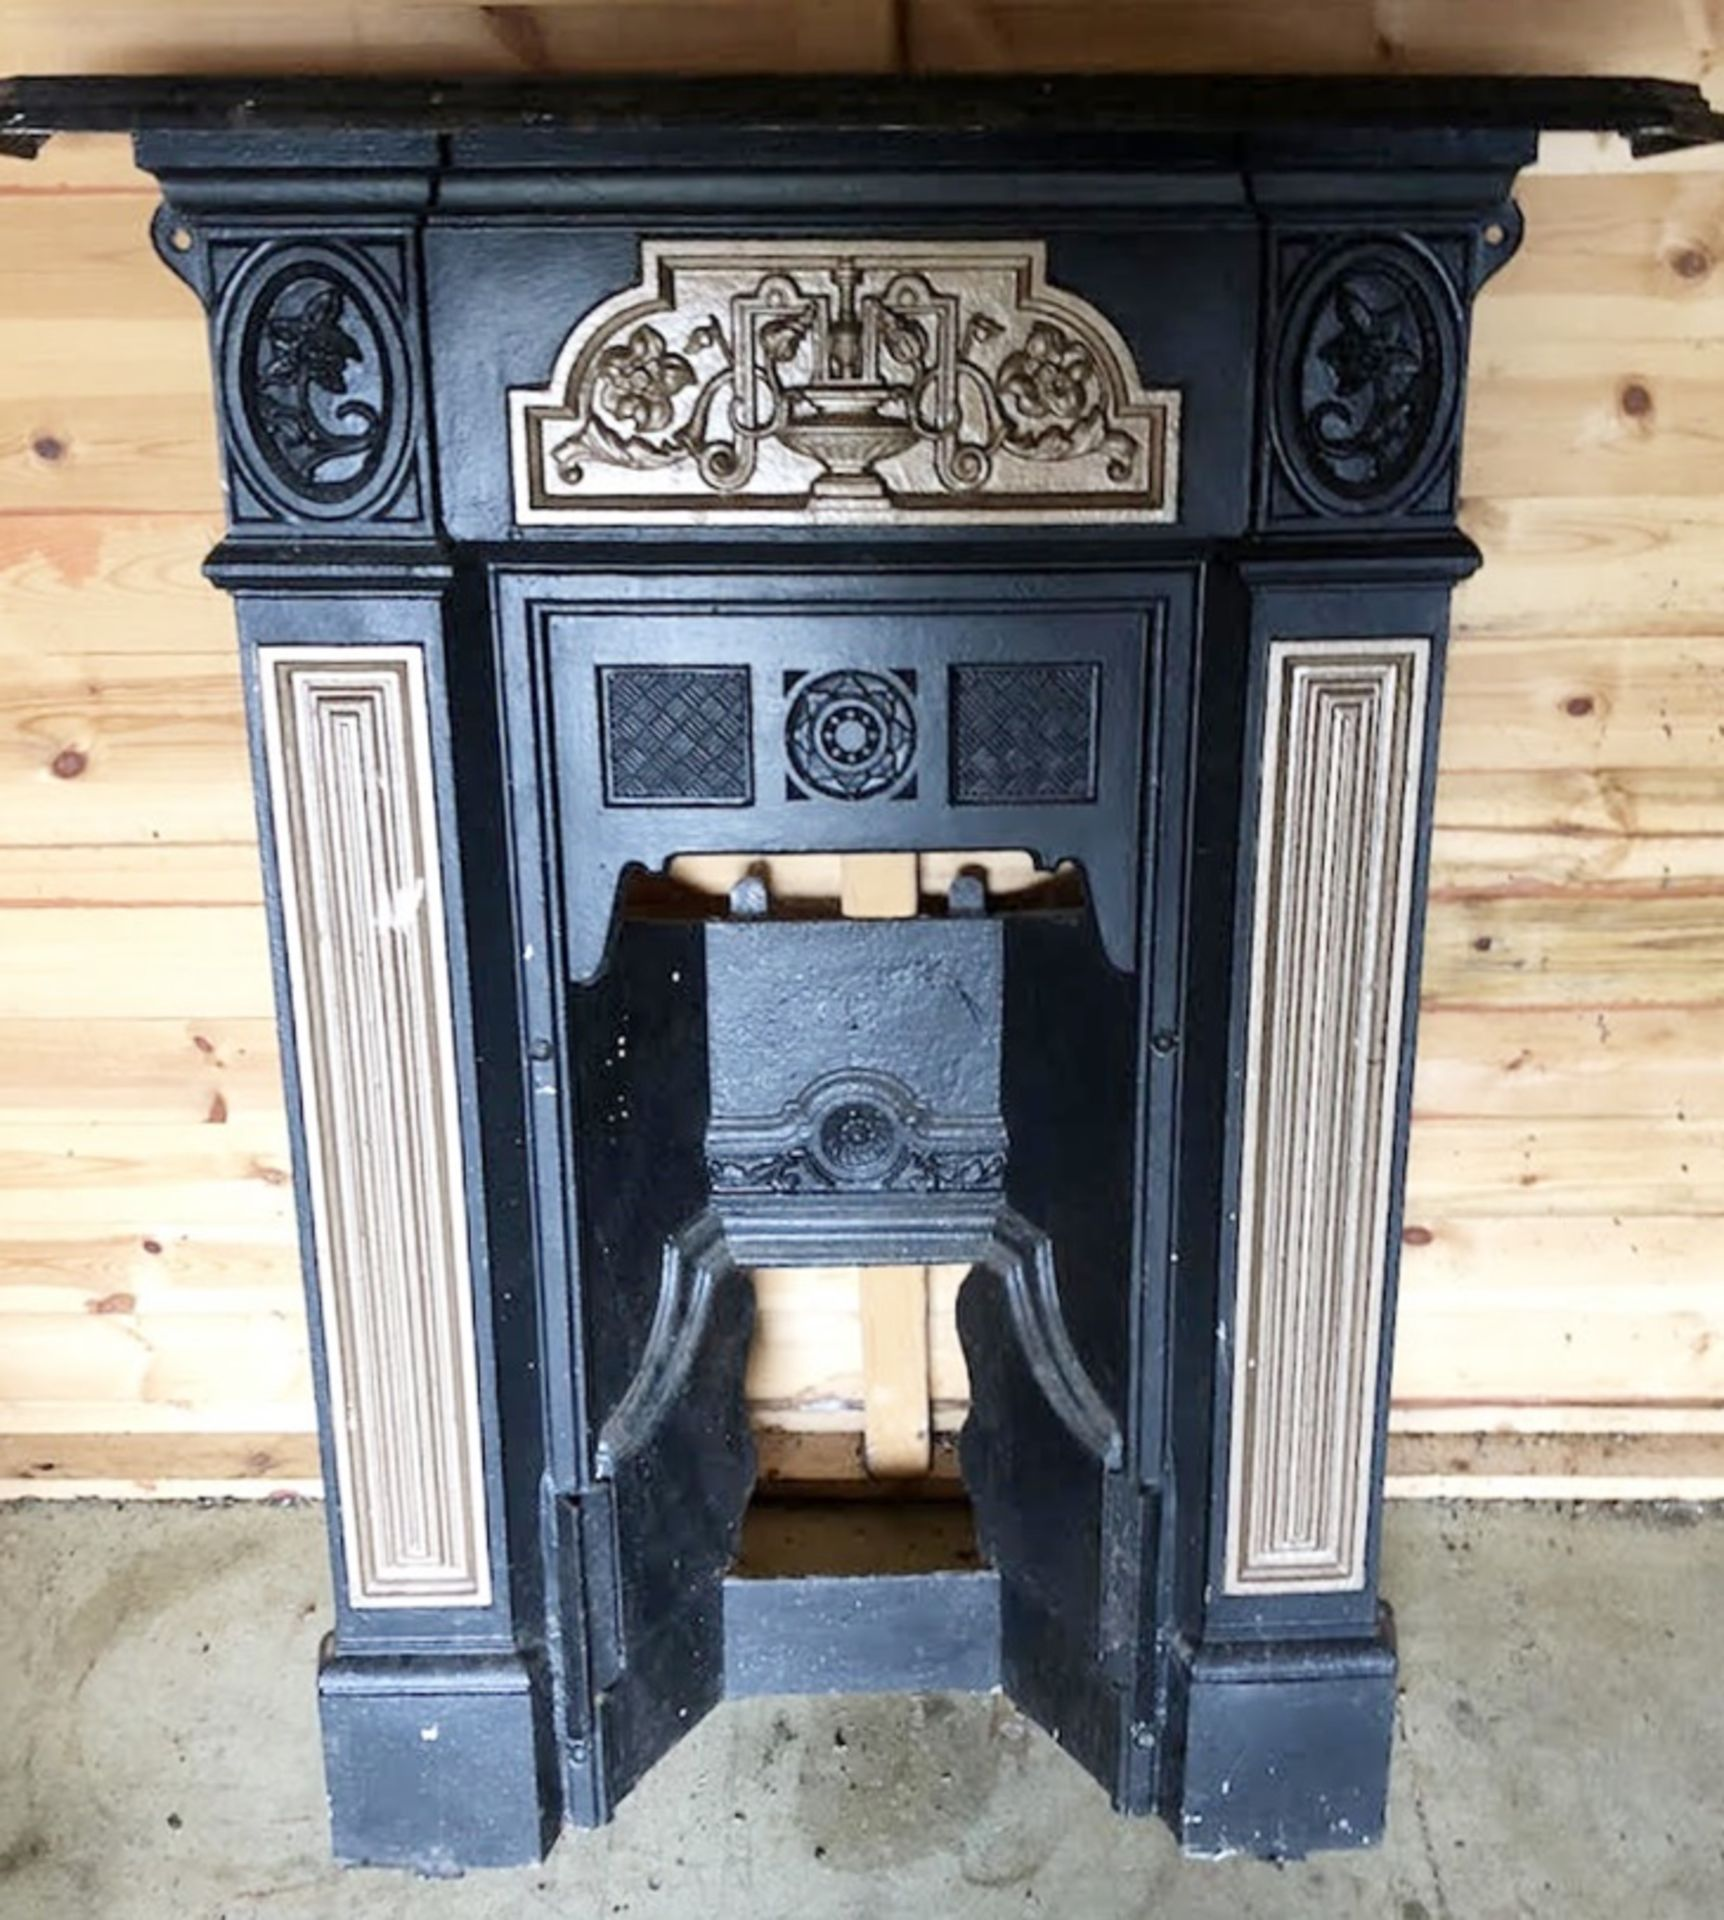 Lot 202 - 1 x Ornate Fire Surround Finished in Black and Gold - H100 x W75 cms - CL320 - Location: Herts WD23